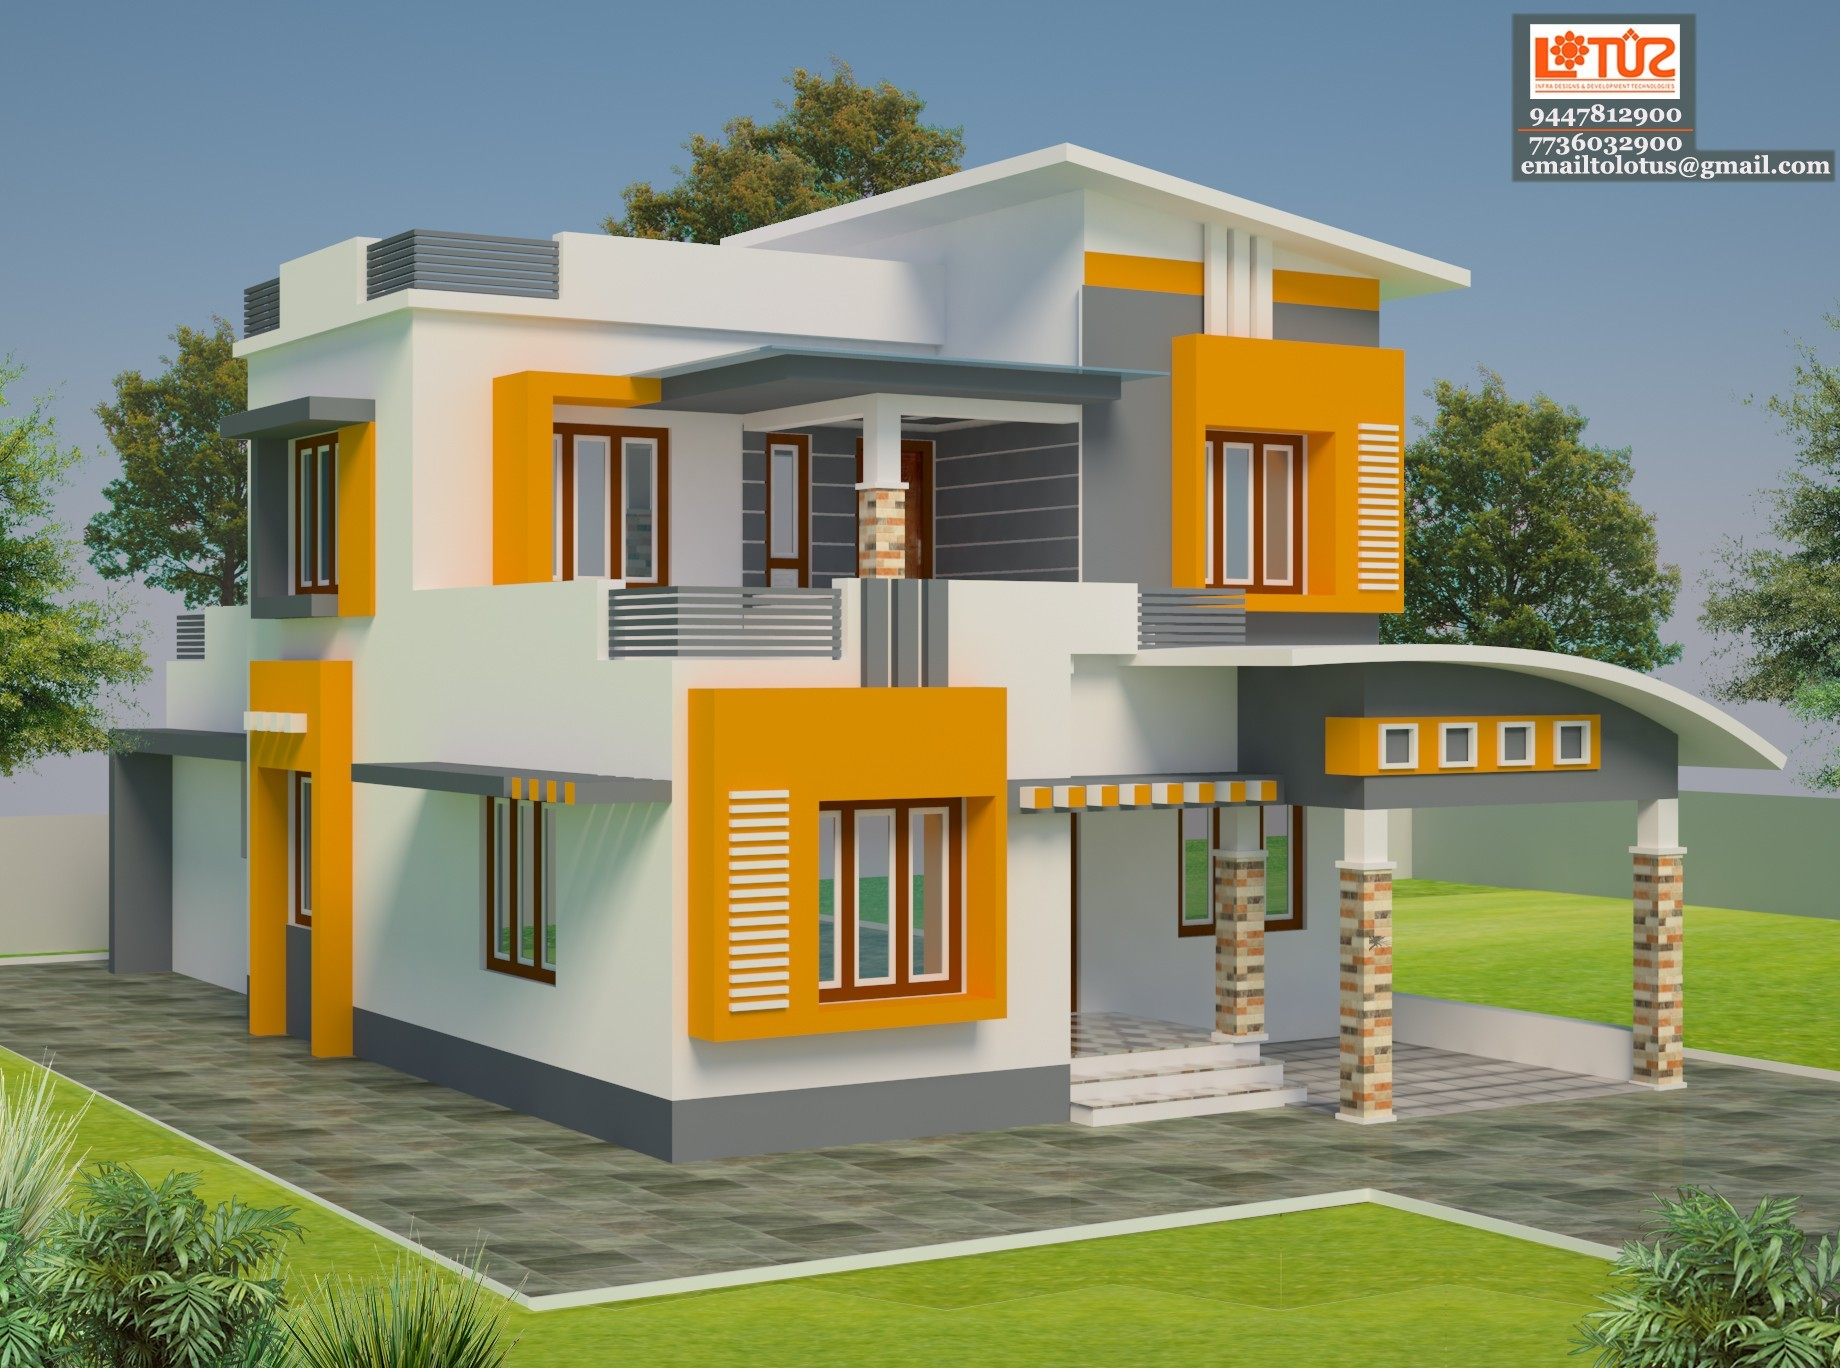 2200 Square Feet 4 Bedroom Simple Contemporary Home Design For 44 Lacks